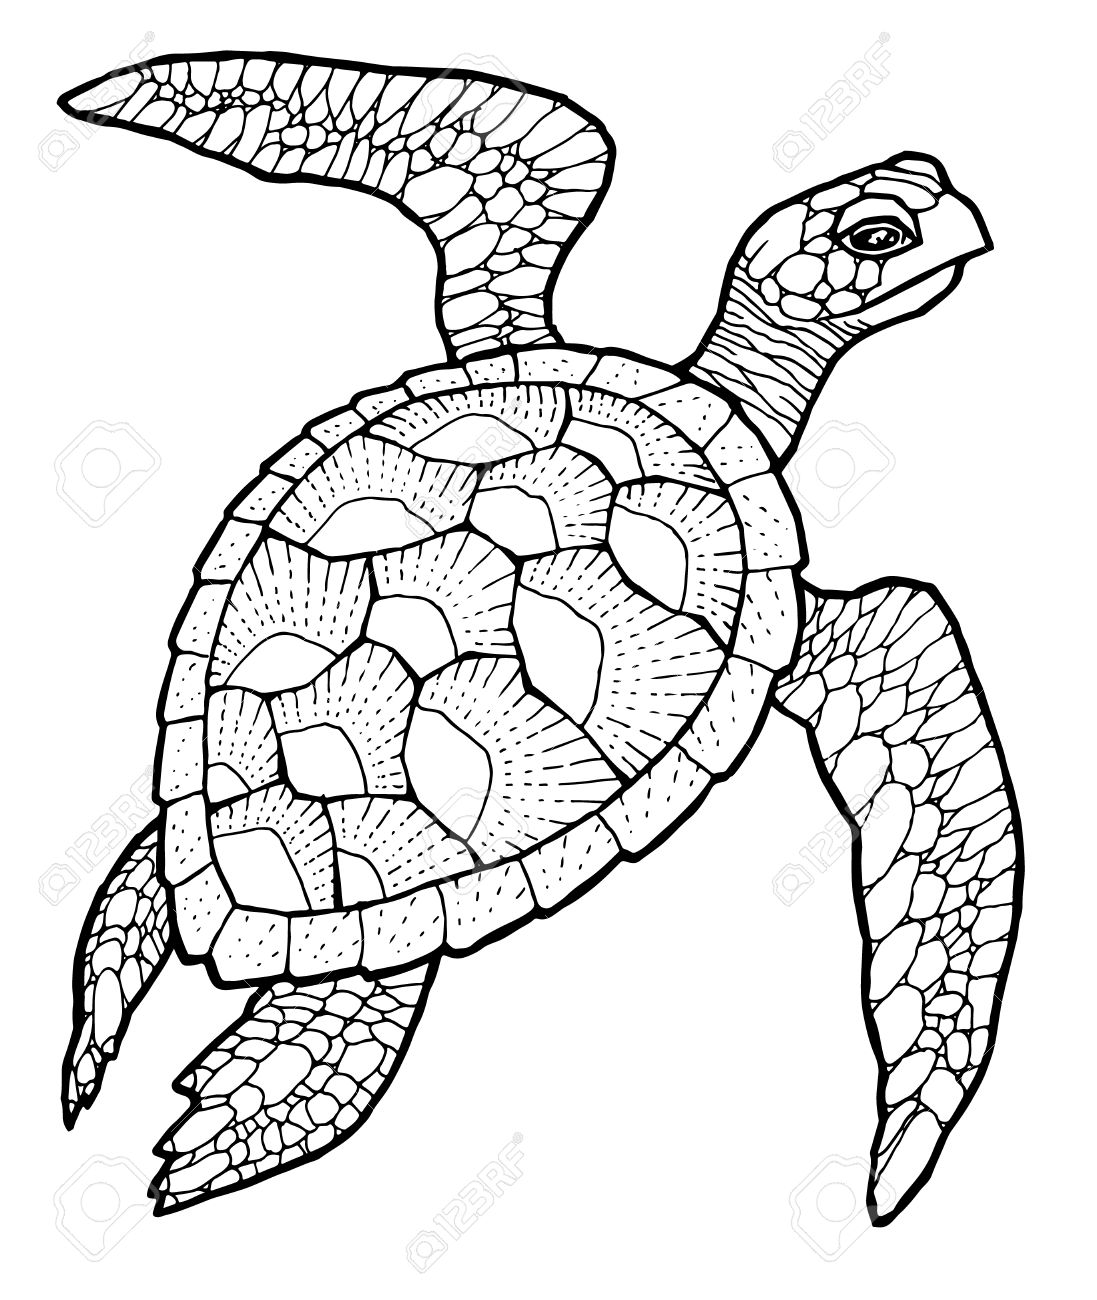 1097x1300 51356895 Sea Turtle Line Art Vector Stylized Drawing Stock Vector